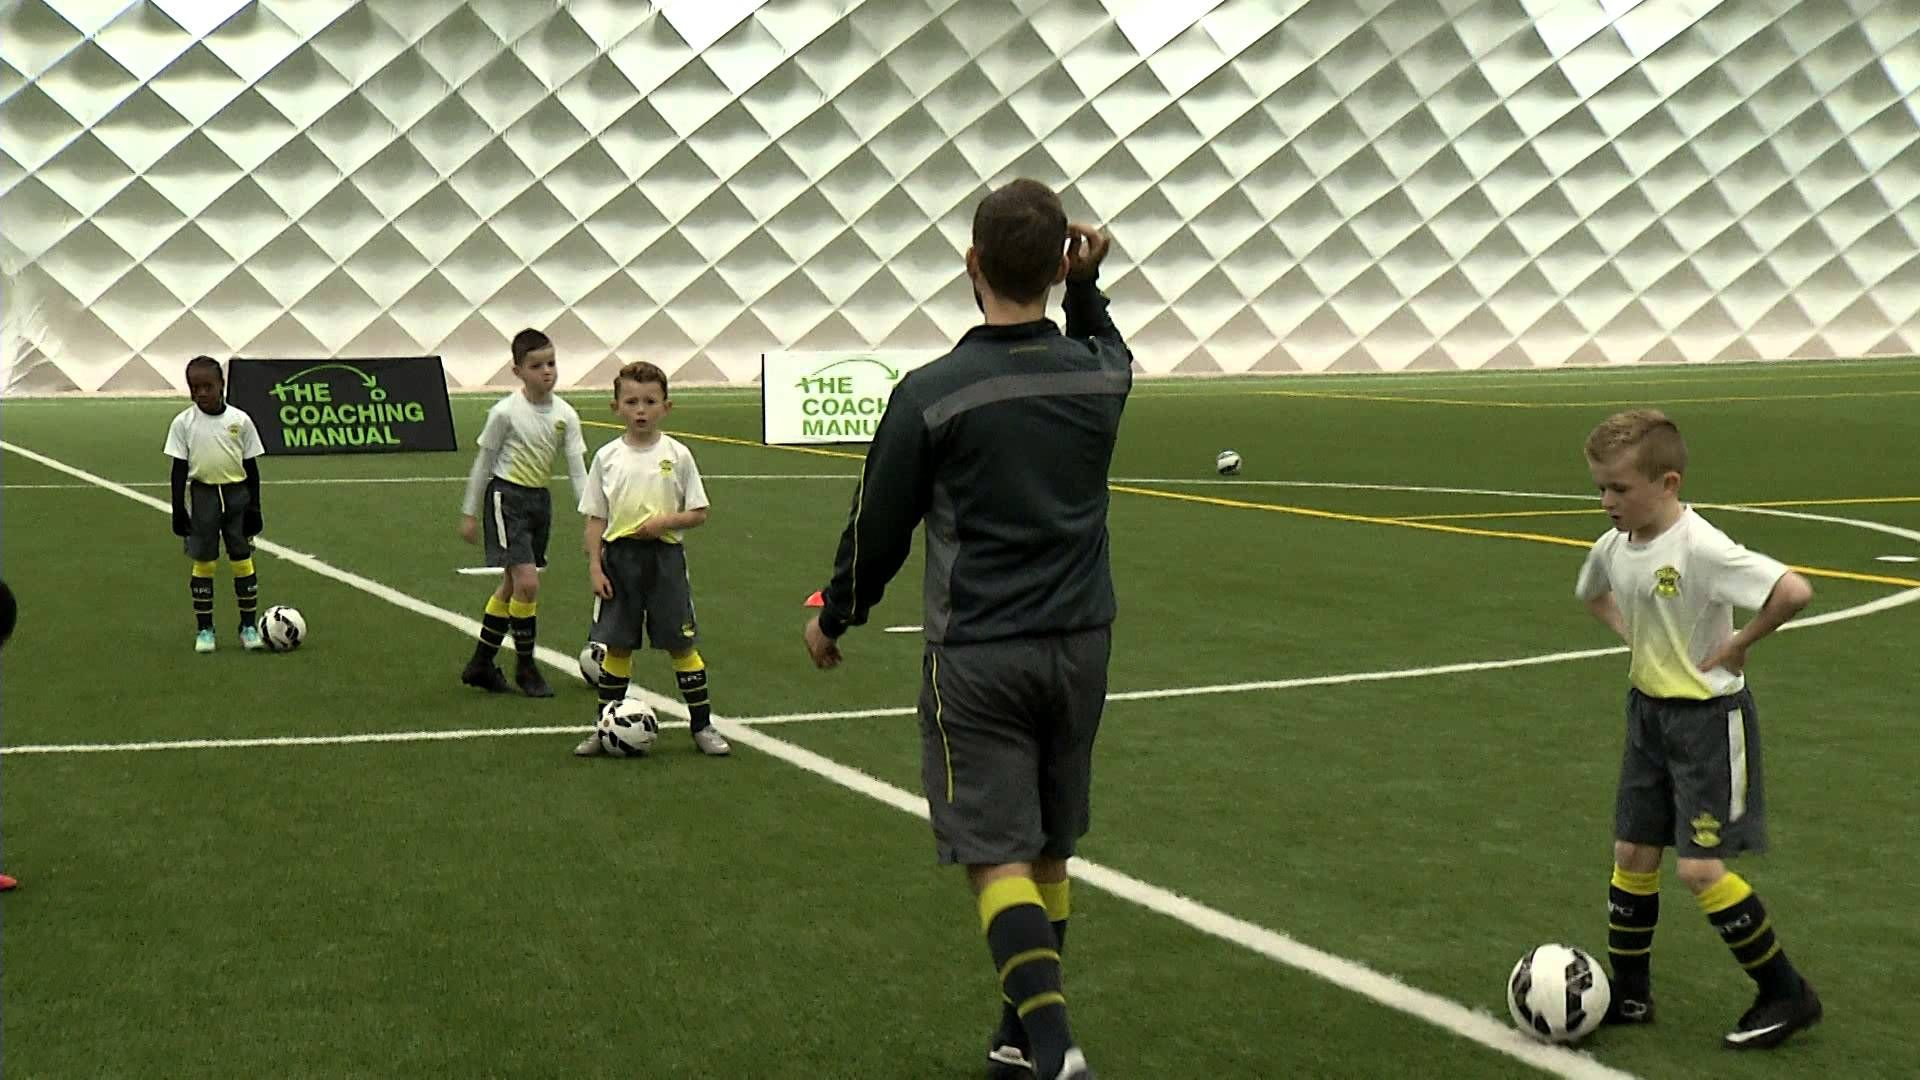 a21247059bbb3 Ball Mastery & Turns - Warm Up   Youth Coaching Drills   Soccer warm ...